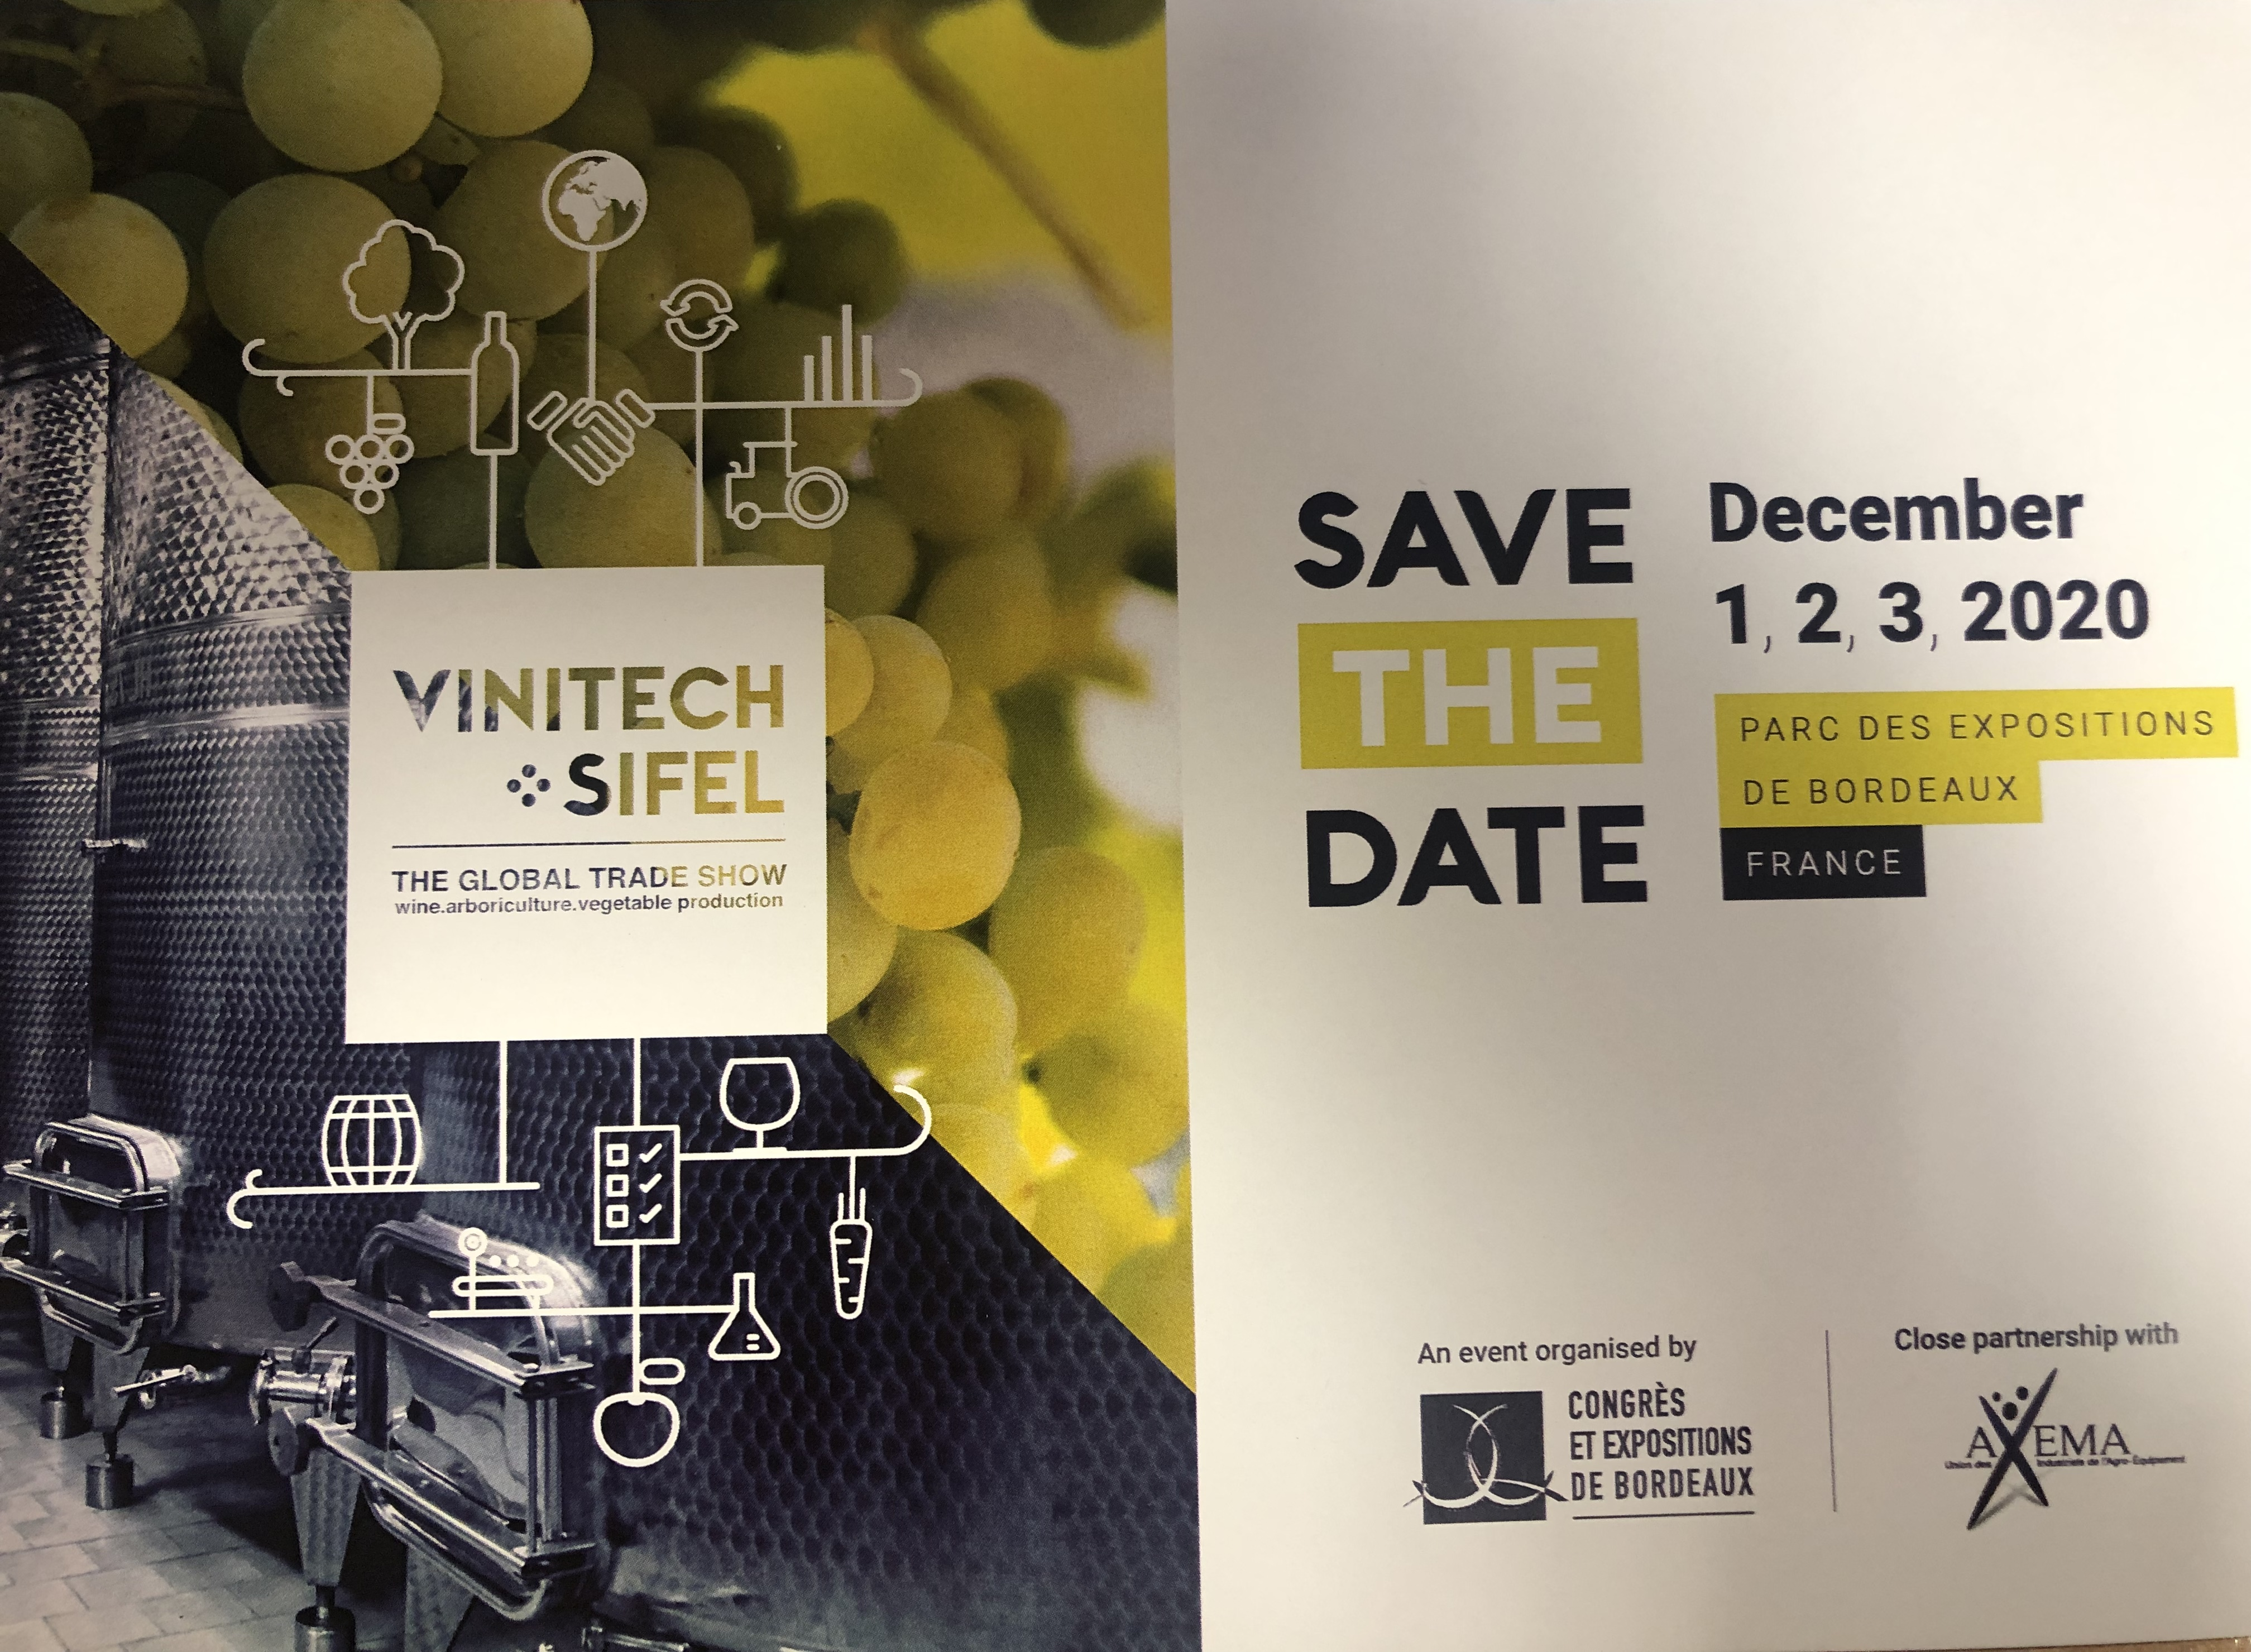 Vinitech Sifel SAVE THE DATE: 1,2,3 Décembre 2020